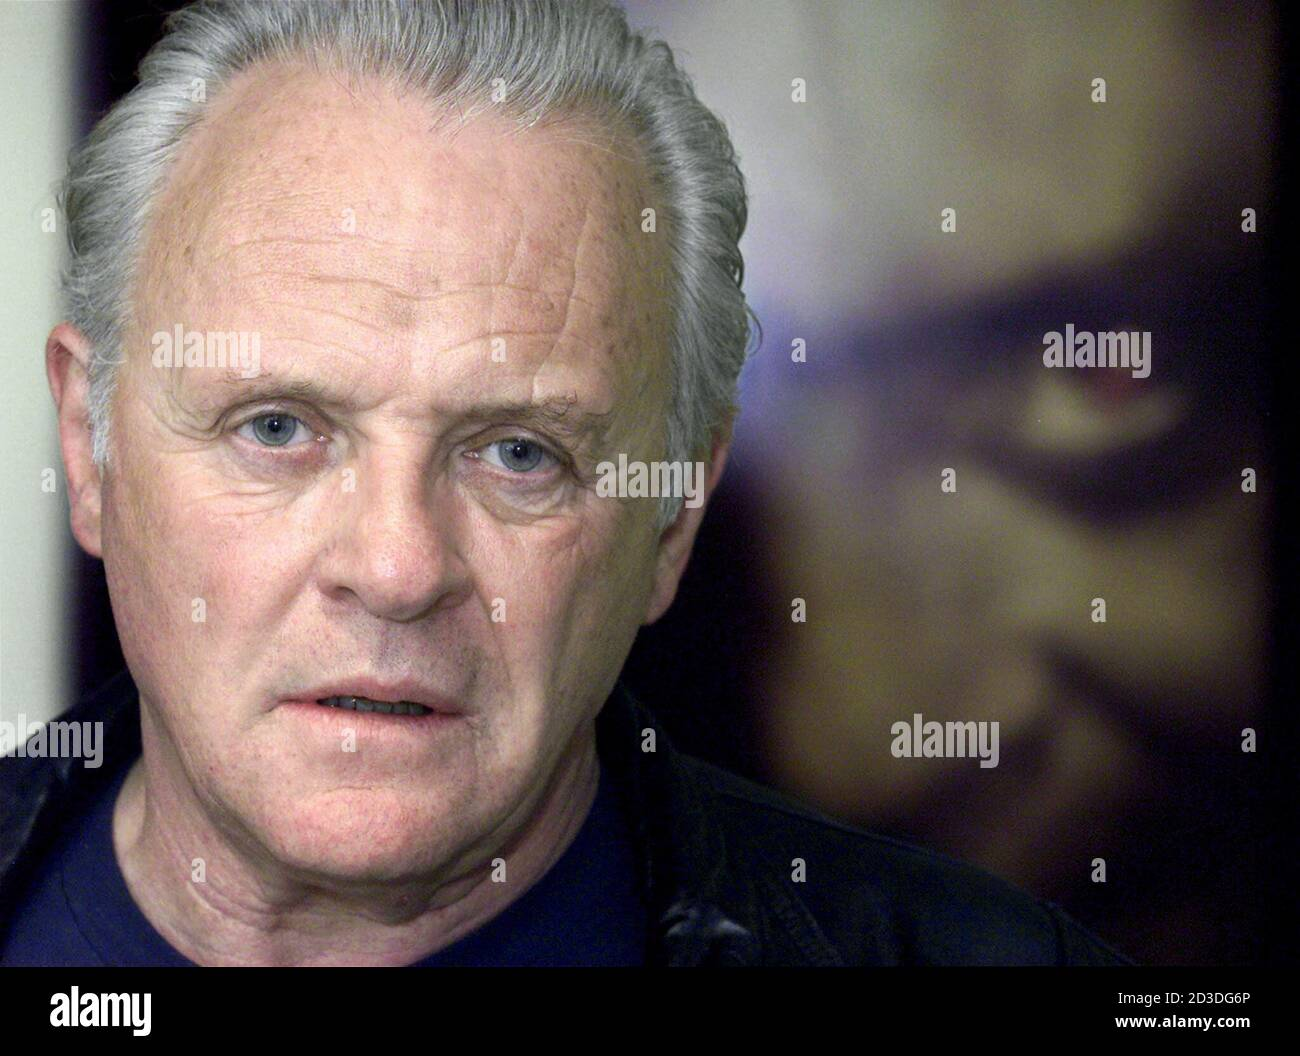 Sir Anthony Hopkins Lets Out A Long Long Sigh So He Said Are We Done Hopkins The Oscar Winning Actor Who Dismisses His Work As Just A Job Was Doing Yet Another